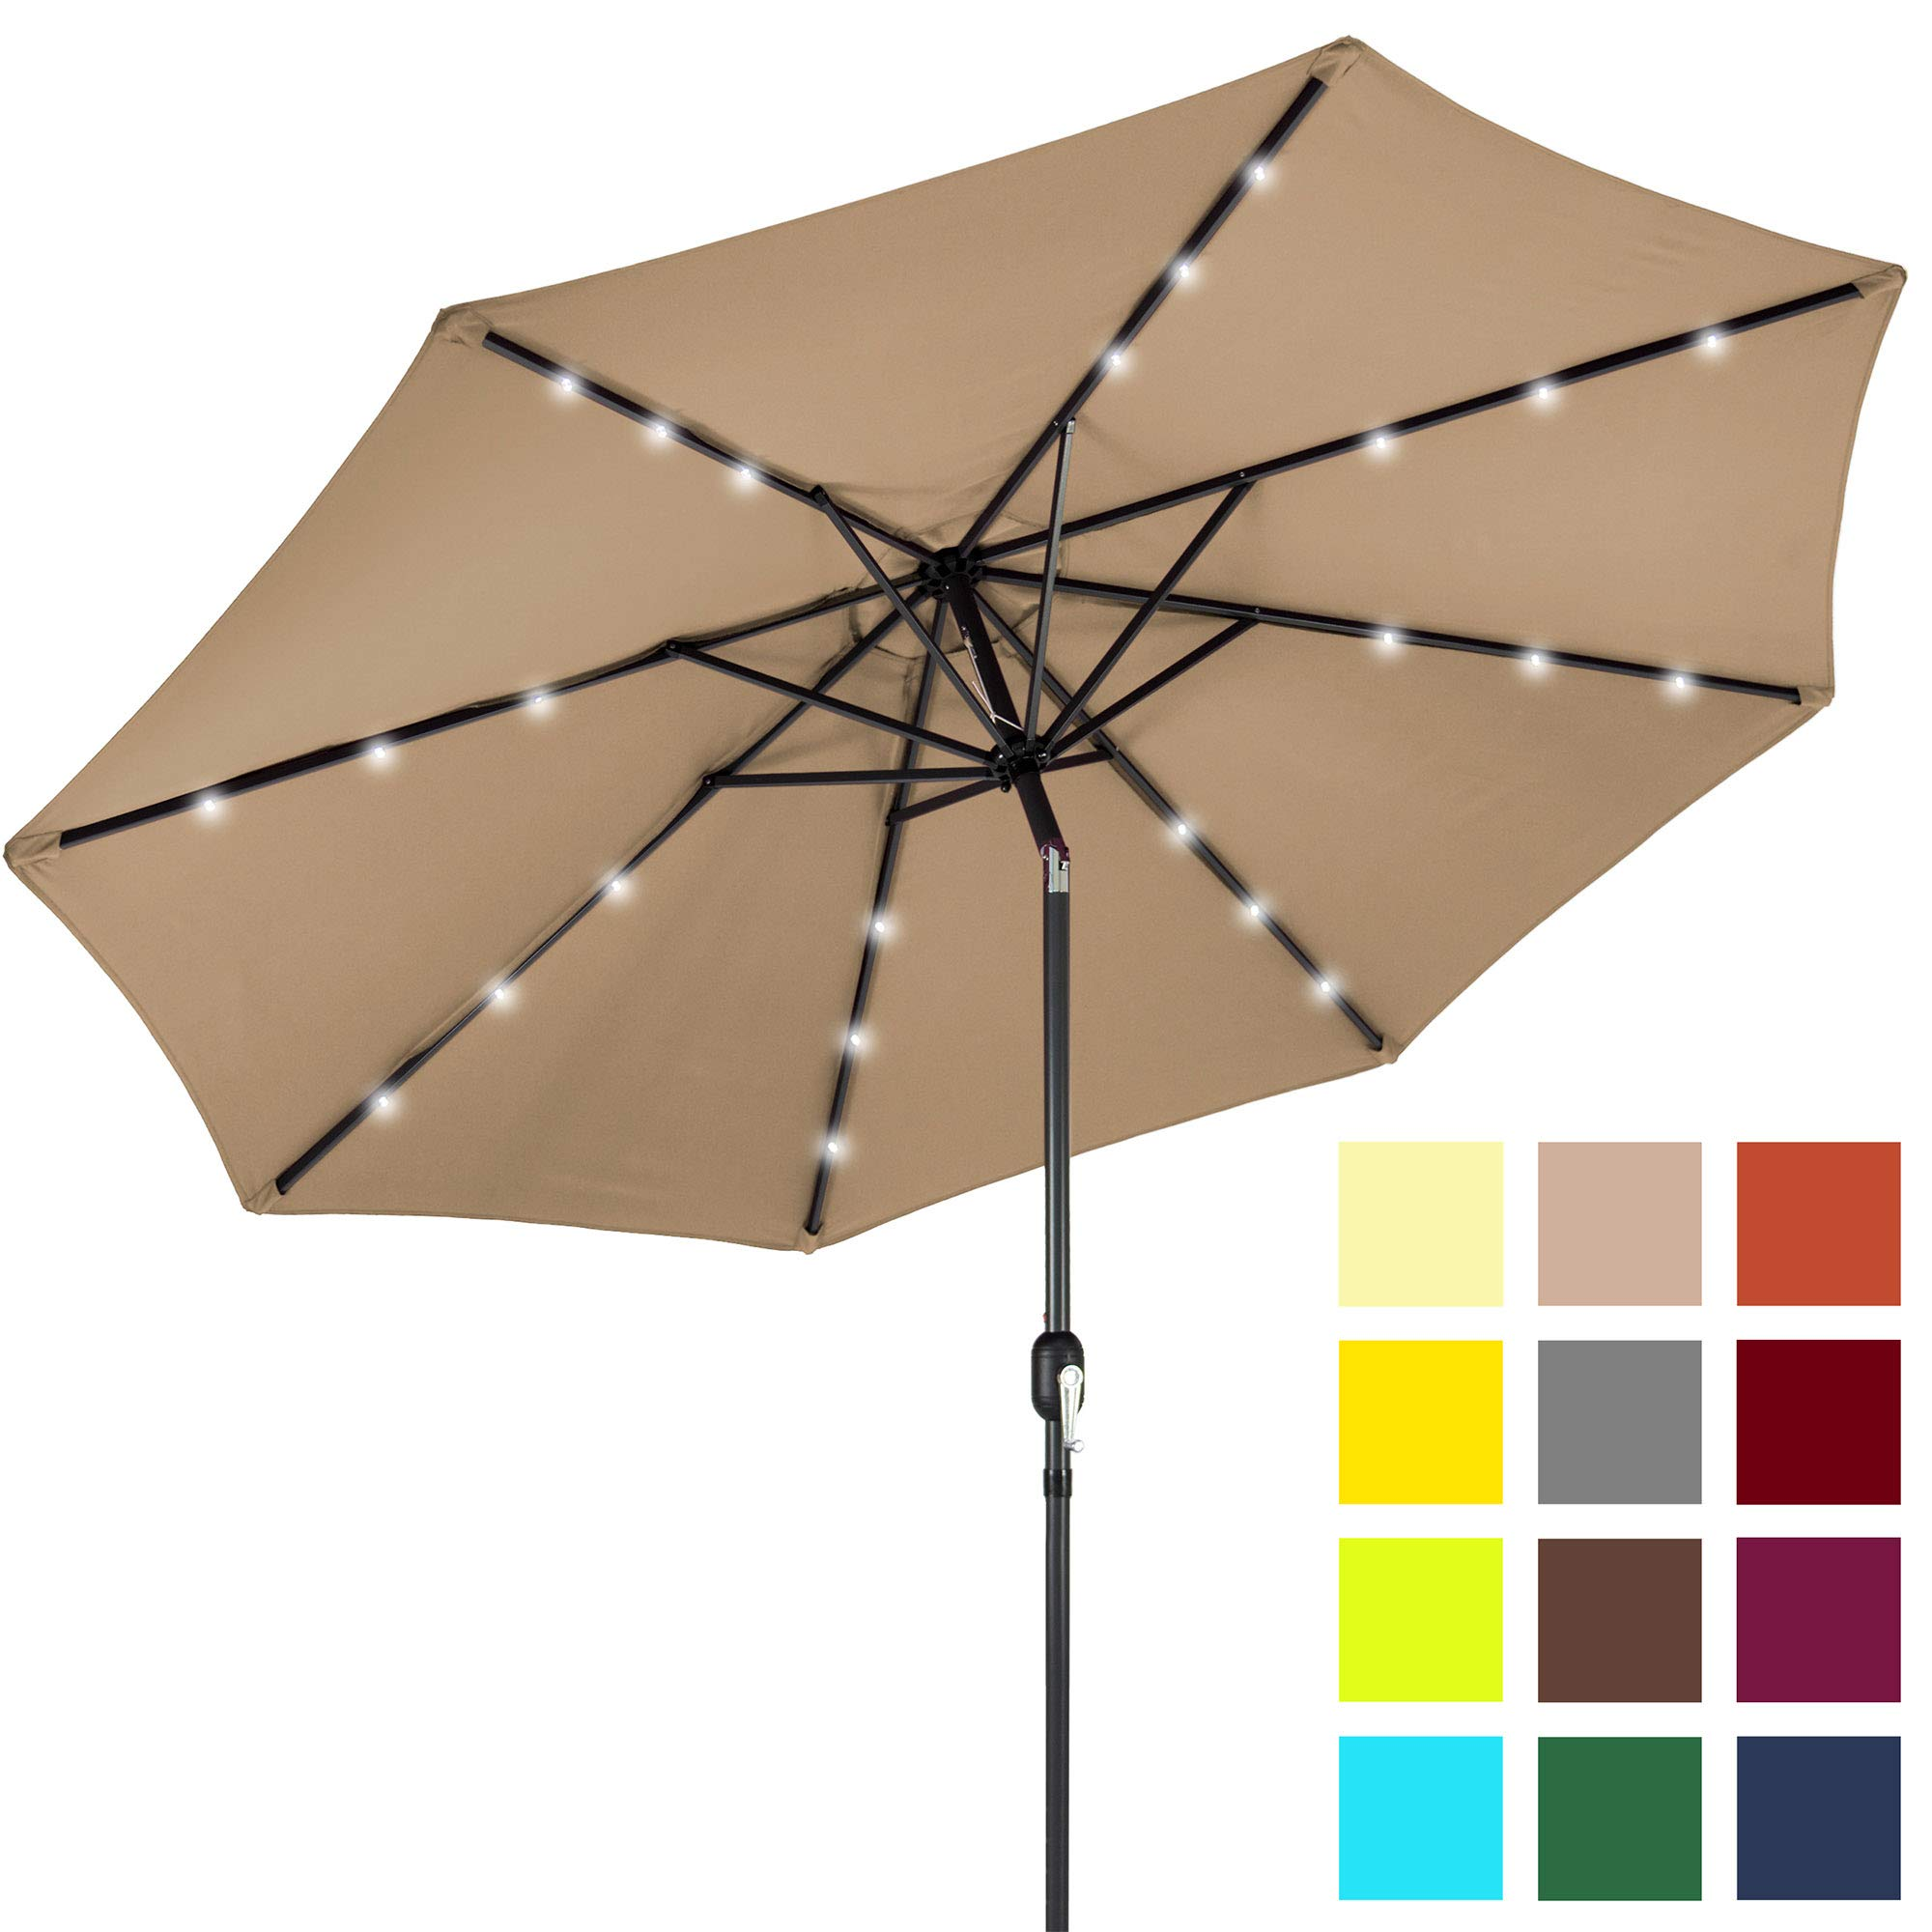 Best Choice Products 10ft Solar LED Lighted Patio Umbrella w/Tilt Adjustment, Fade-Resistant Fabric - Tan by Best Choice Products